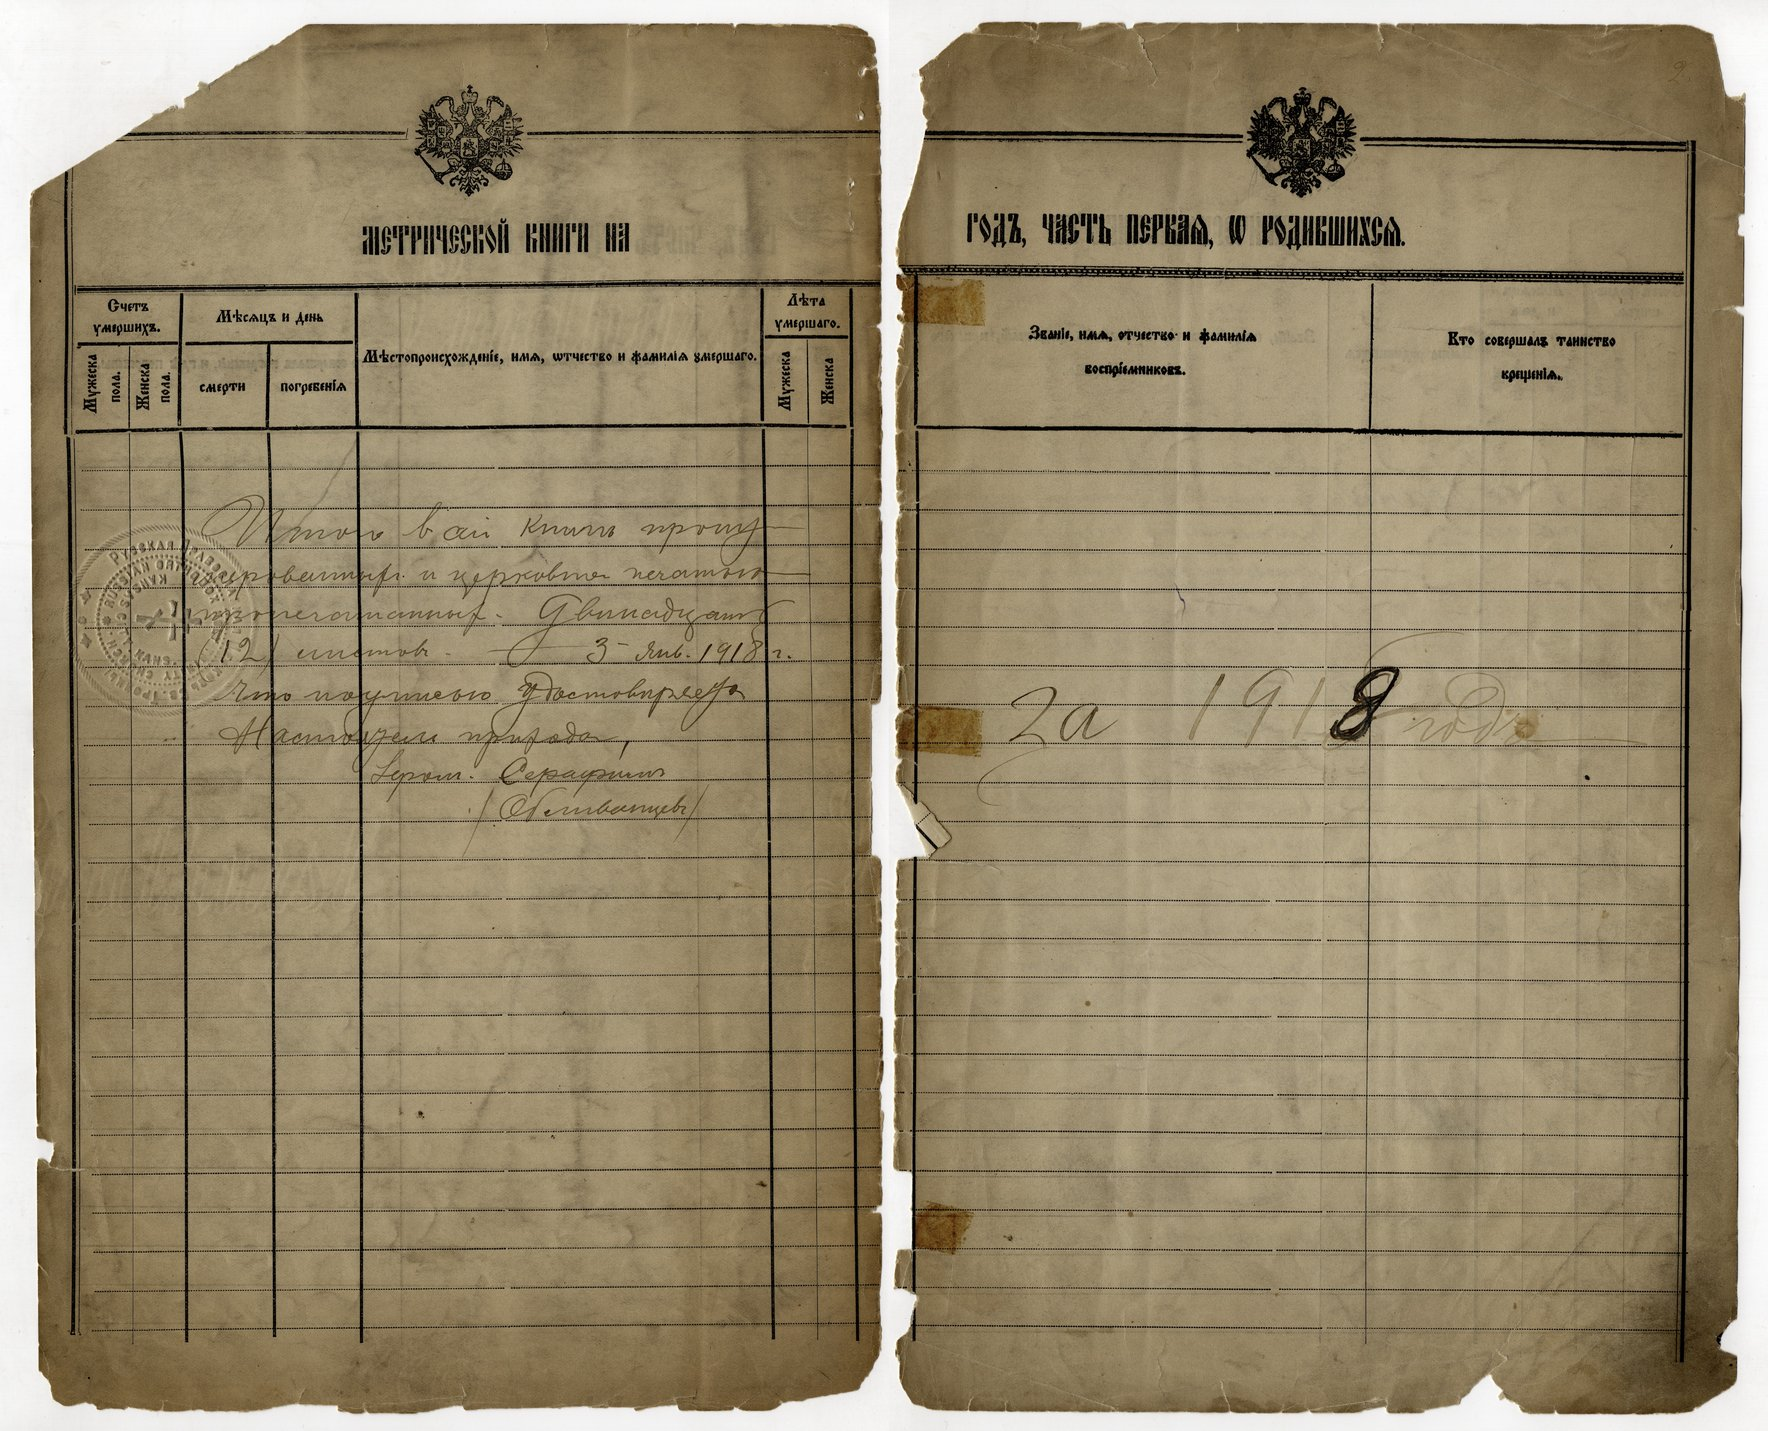 Birth, marriage and death register, Holy Trinity Russian Orthodox Church, Kansas City, Kansas - 1918 - 002 - Birth